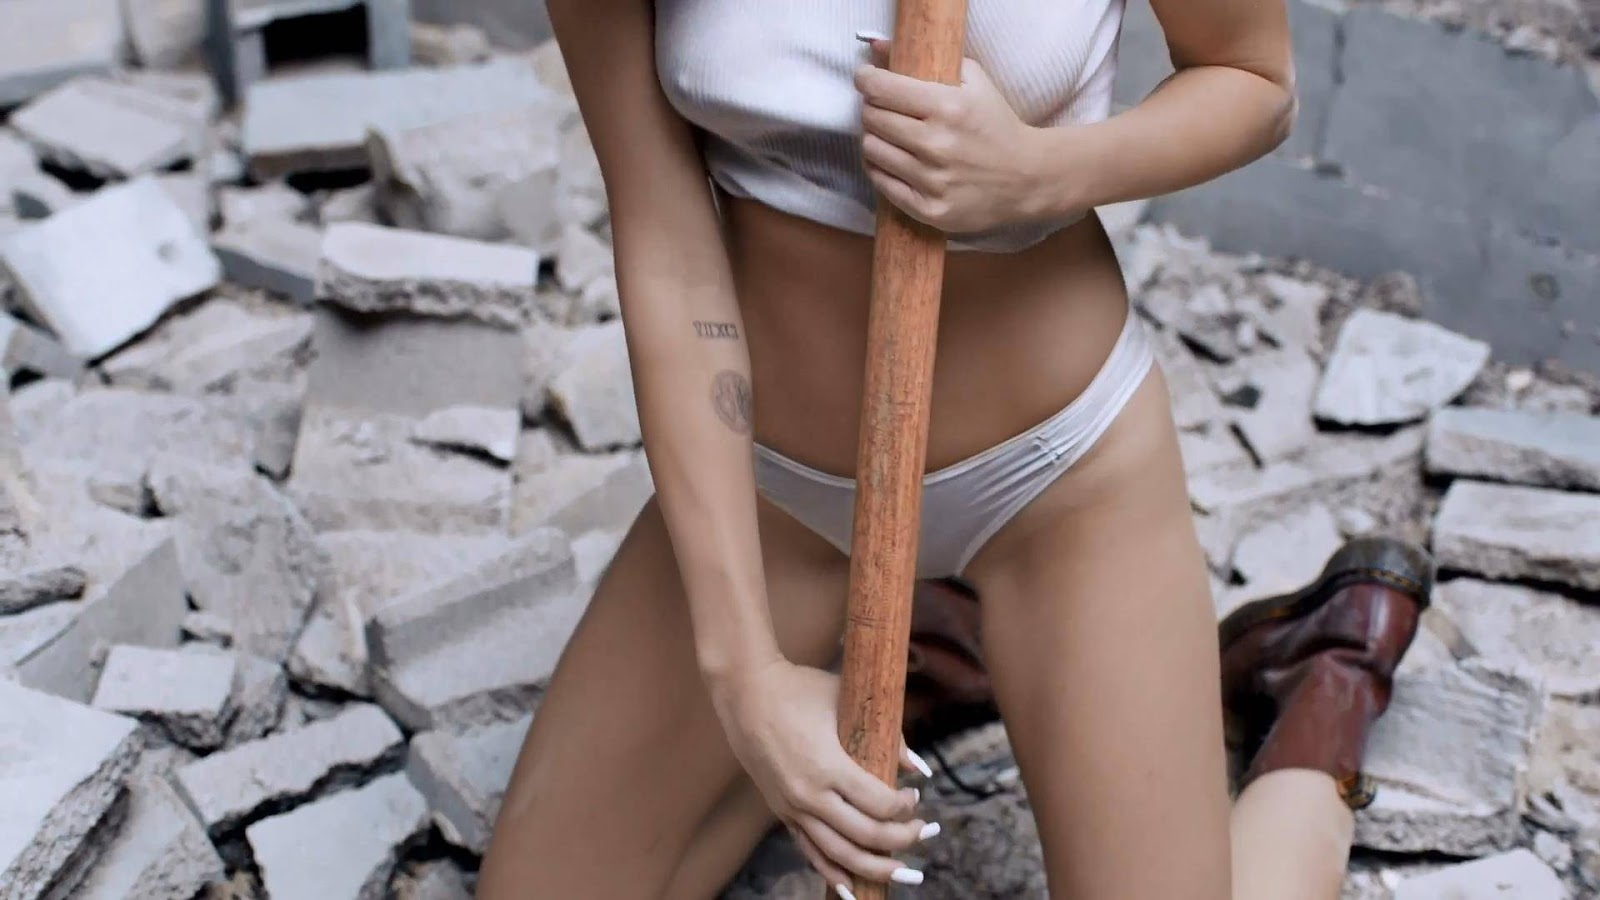 Wrecking ball miley cyrus nude uncensored